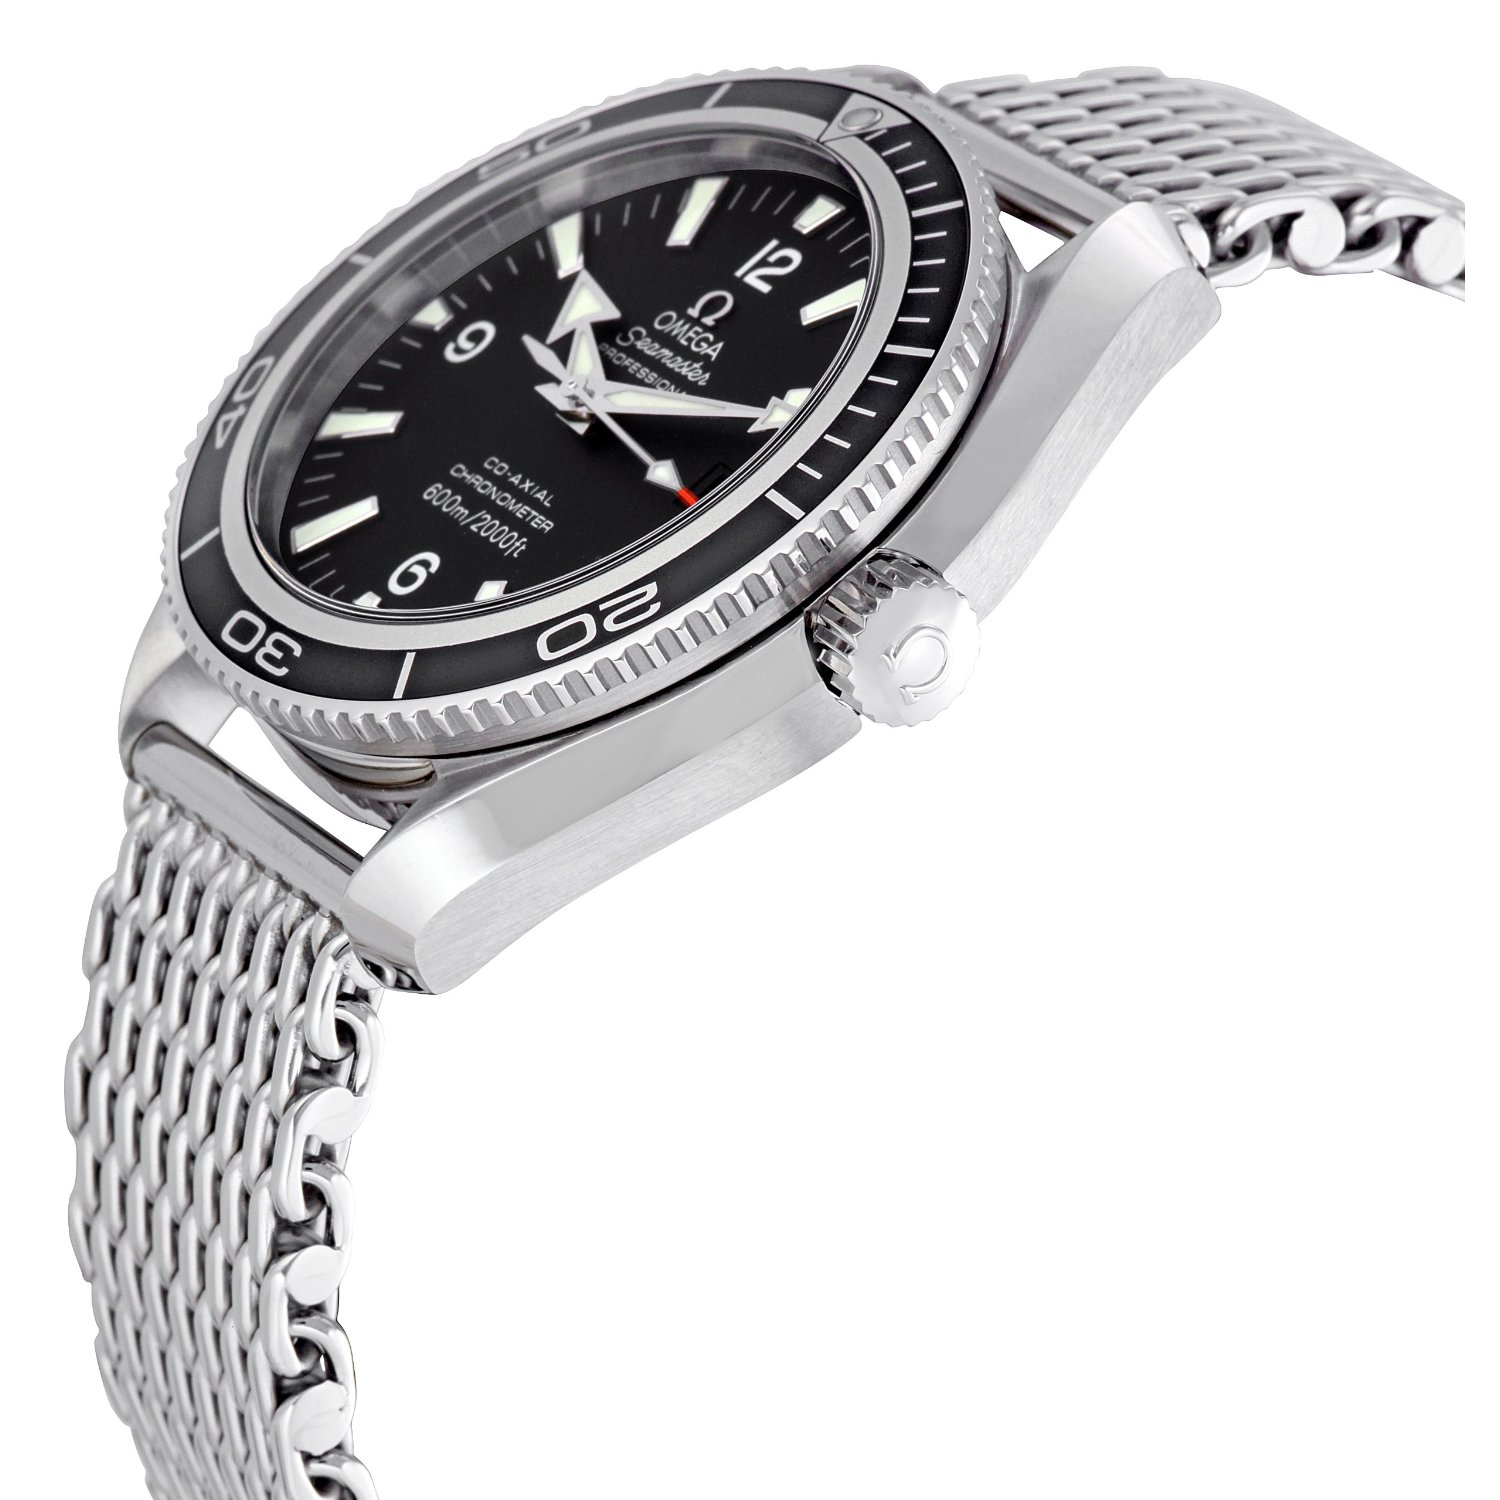 /replicawatches_/Omega-watches/Seamaster/Omega-Seamaster-2201-52-00-Men-s-Automatic-8.jpg